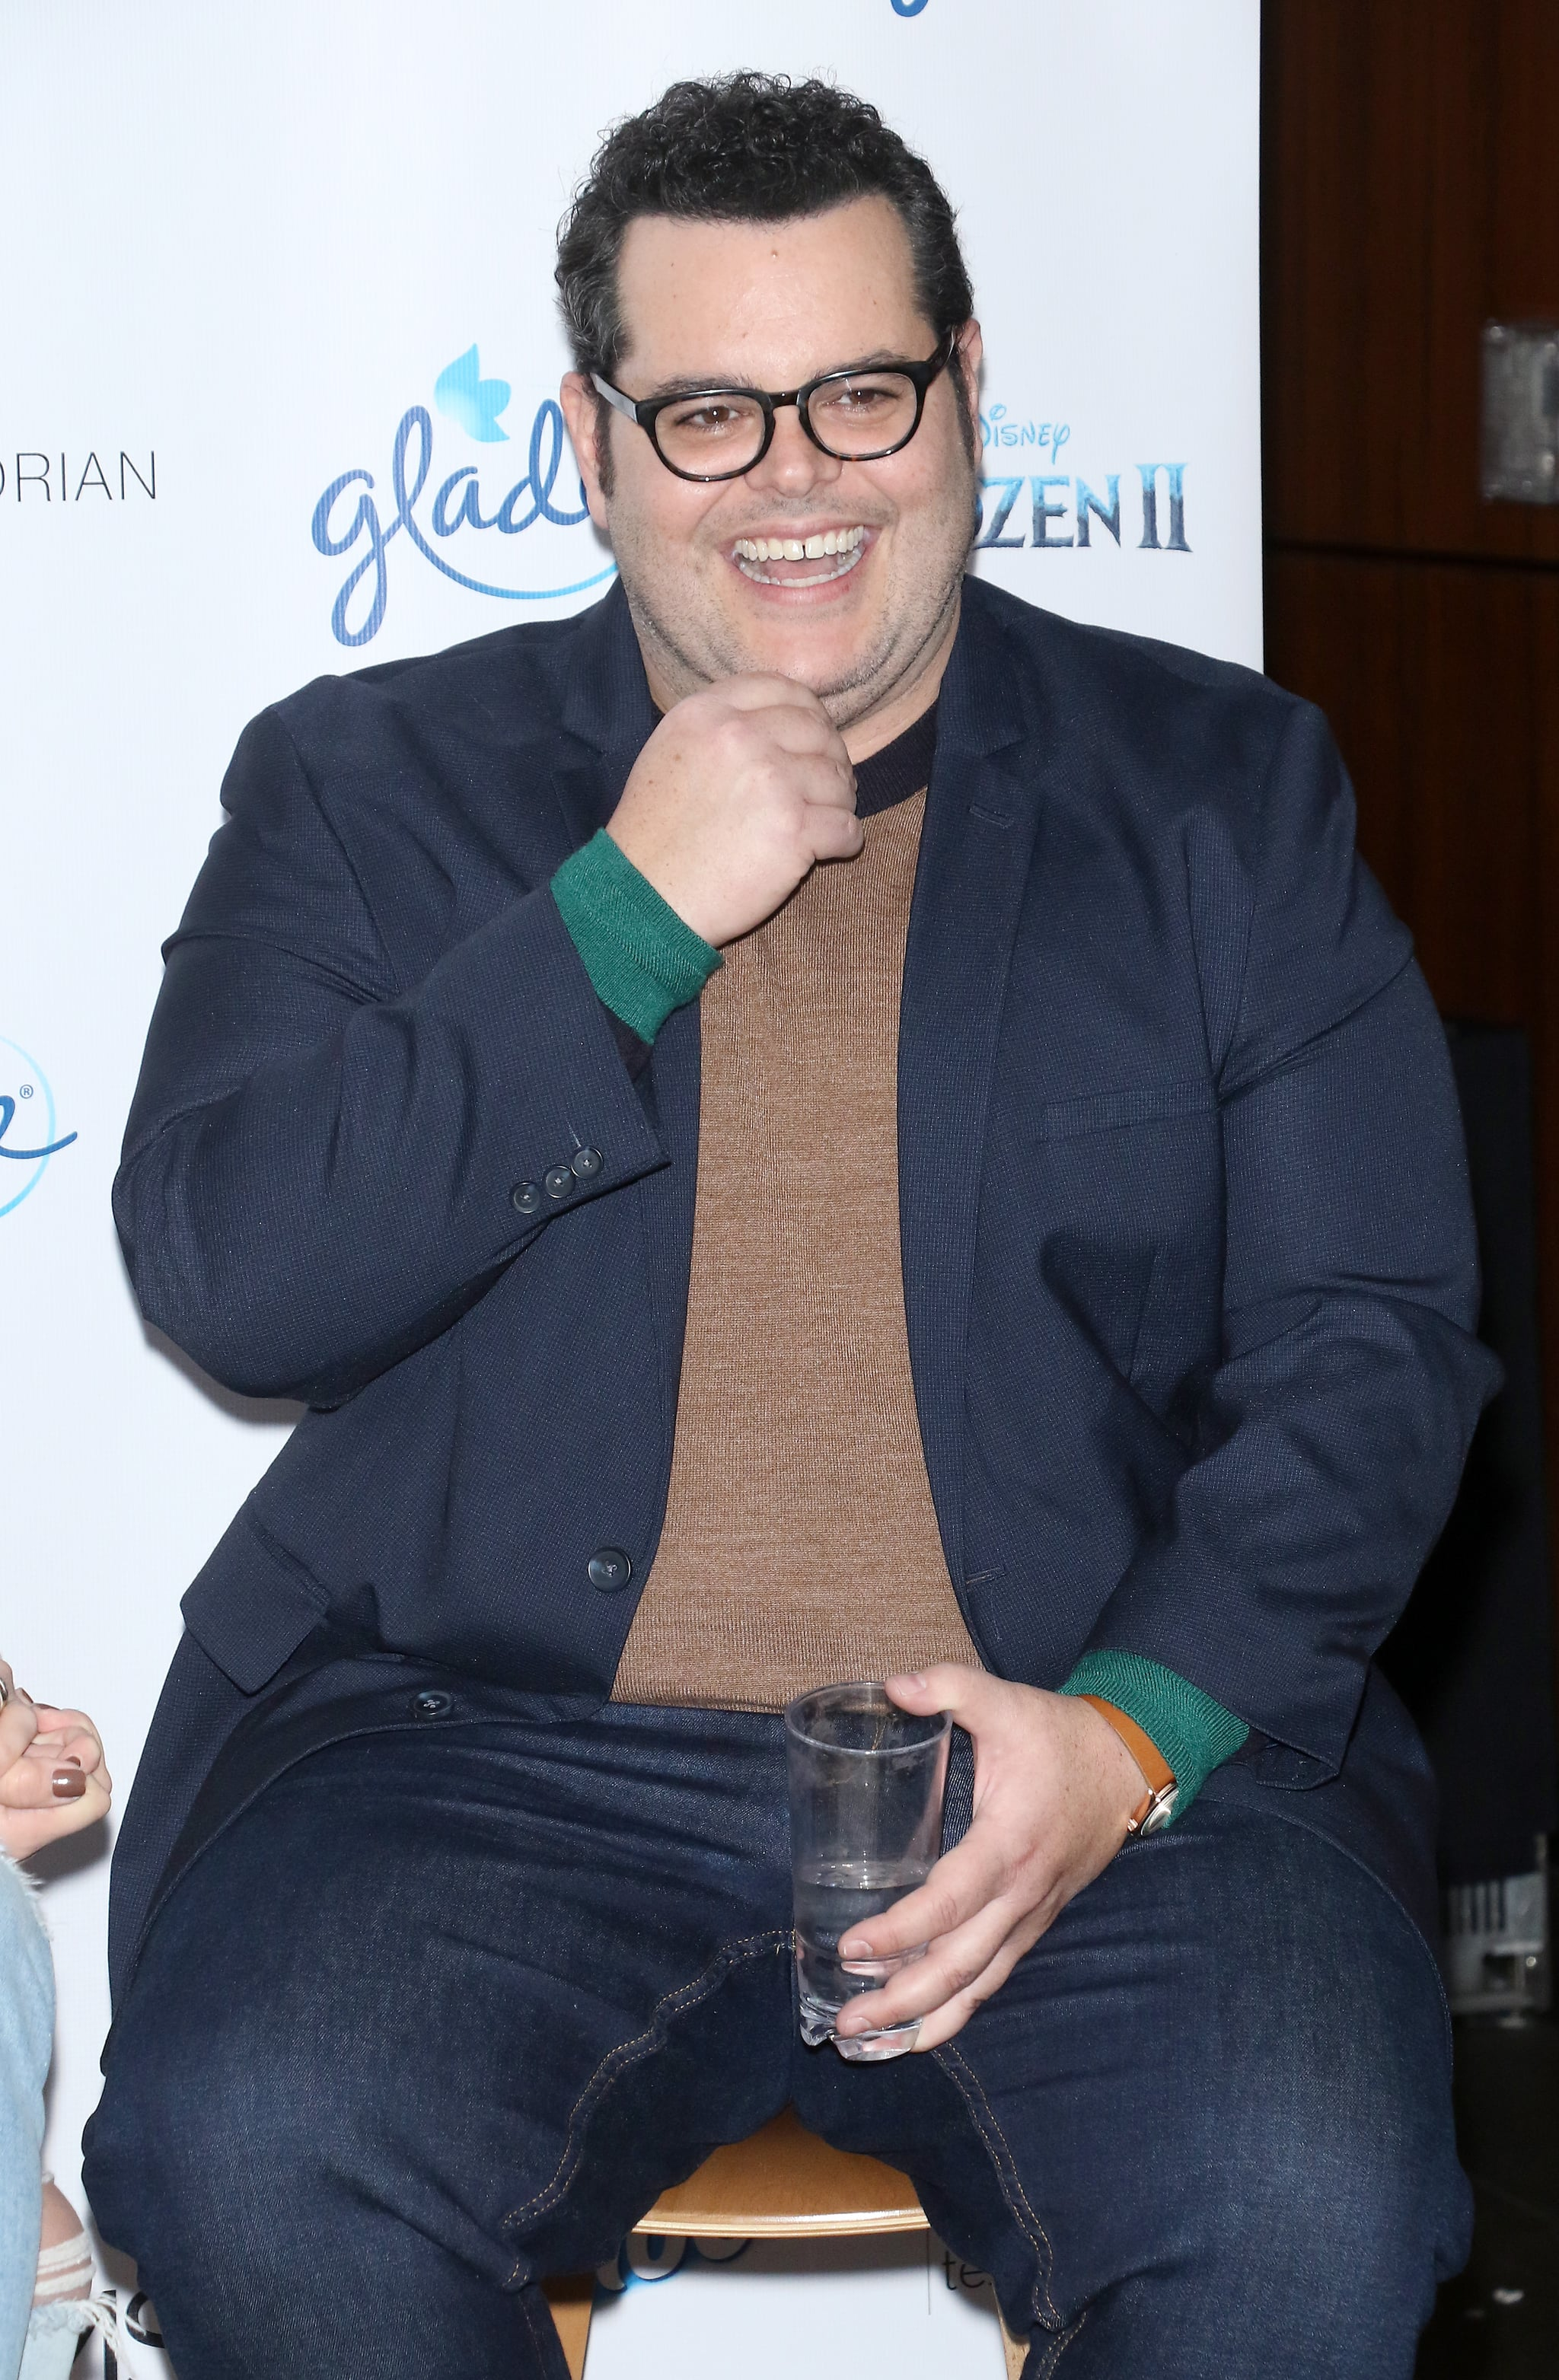 NEW YORK, NEW YORK - NOVEMBER 25: Actor Josh Gad attends The Moms celebration of